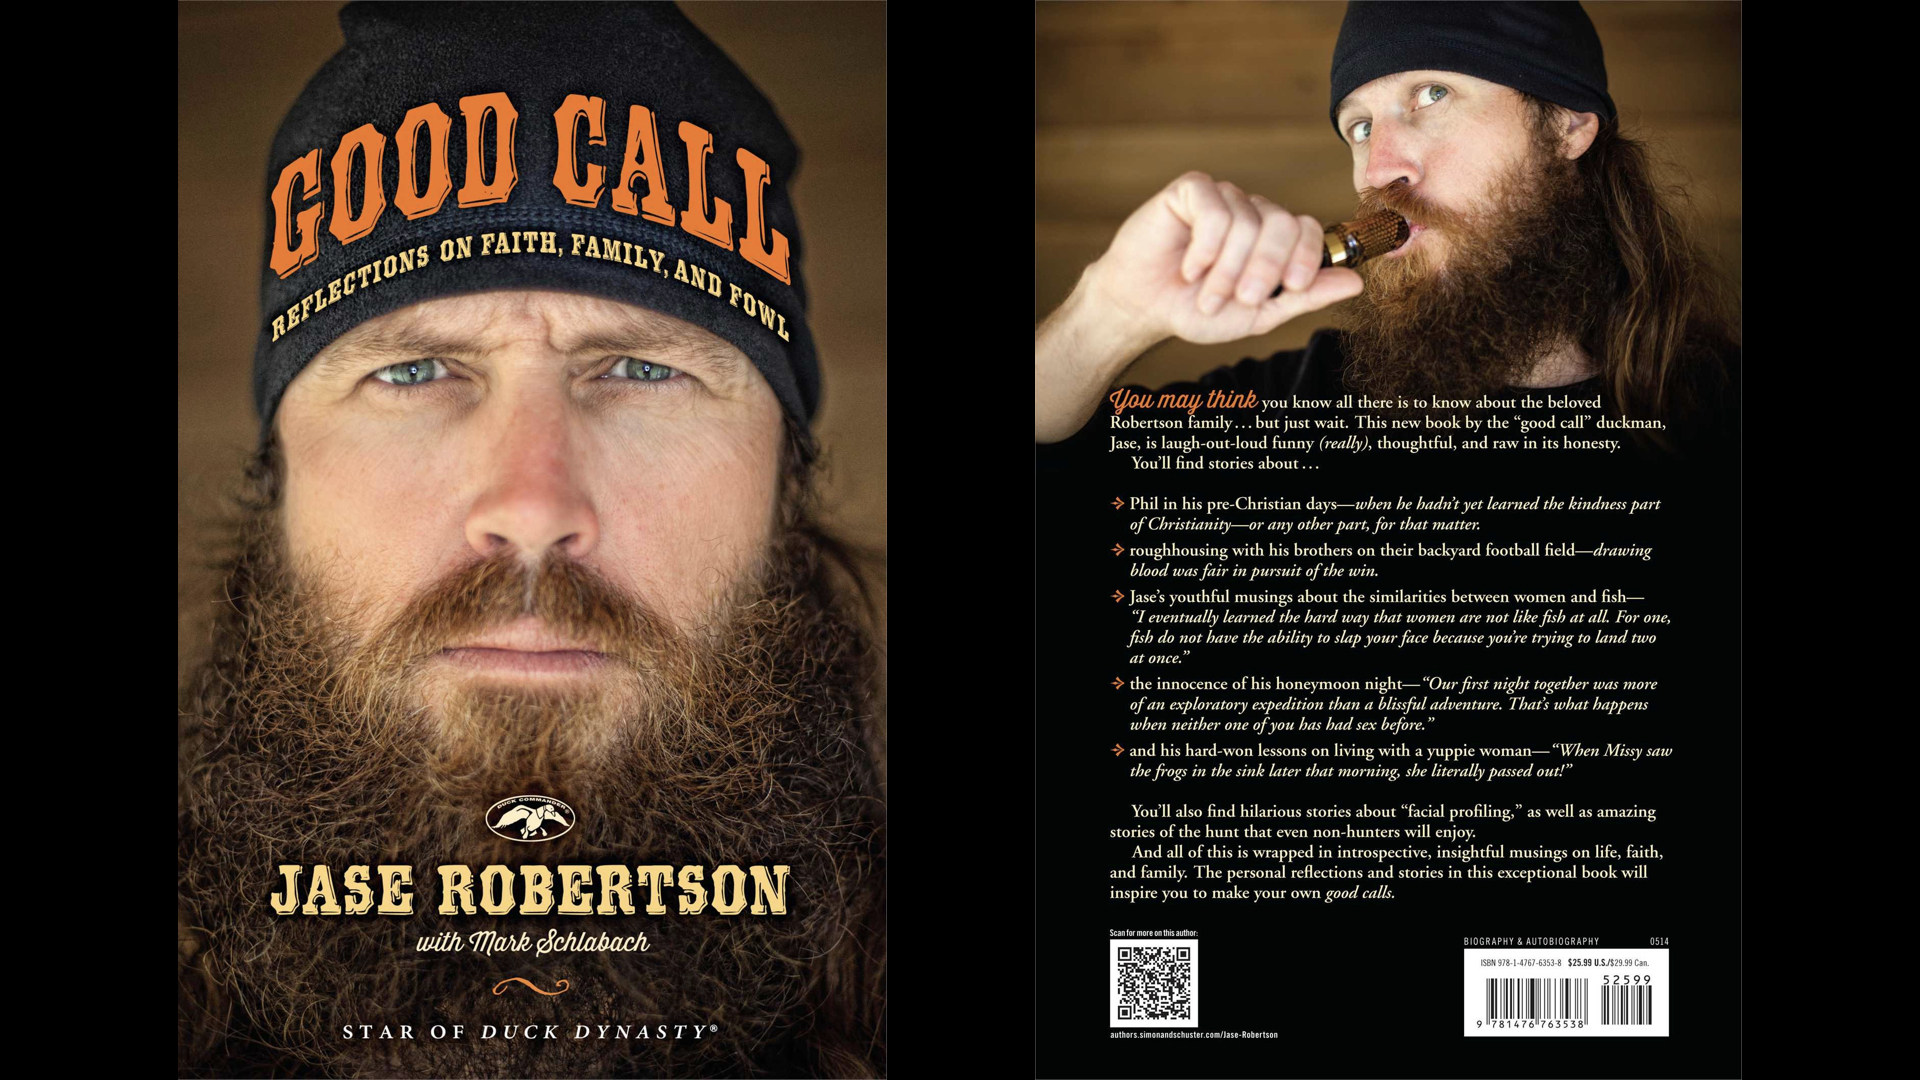 Book Review Good Call By Jase Robertson Steve Cullum